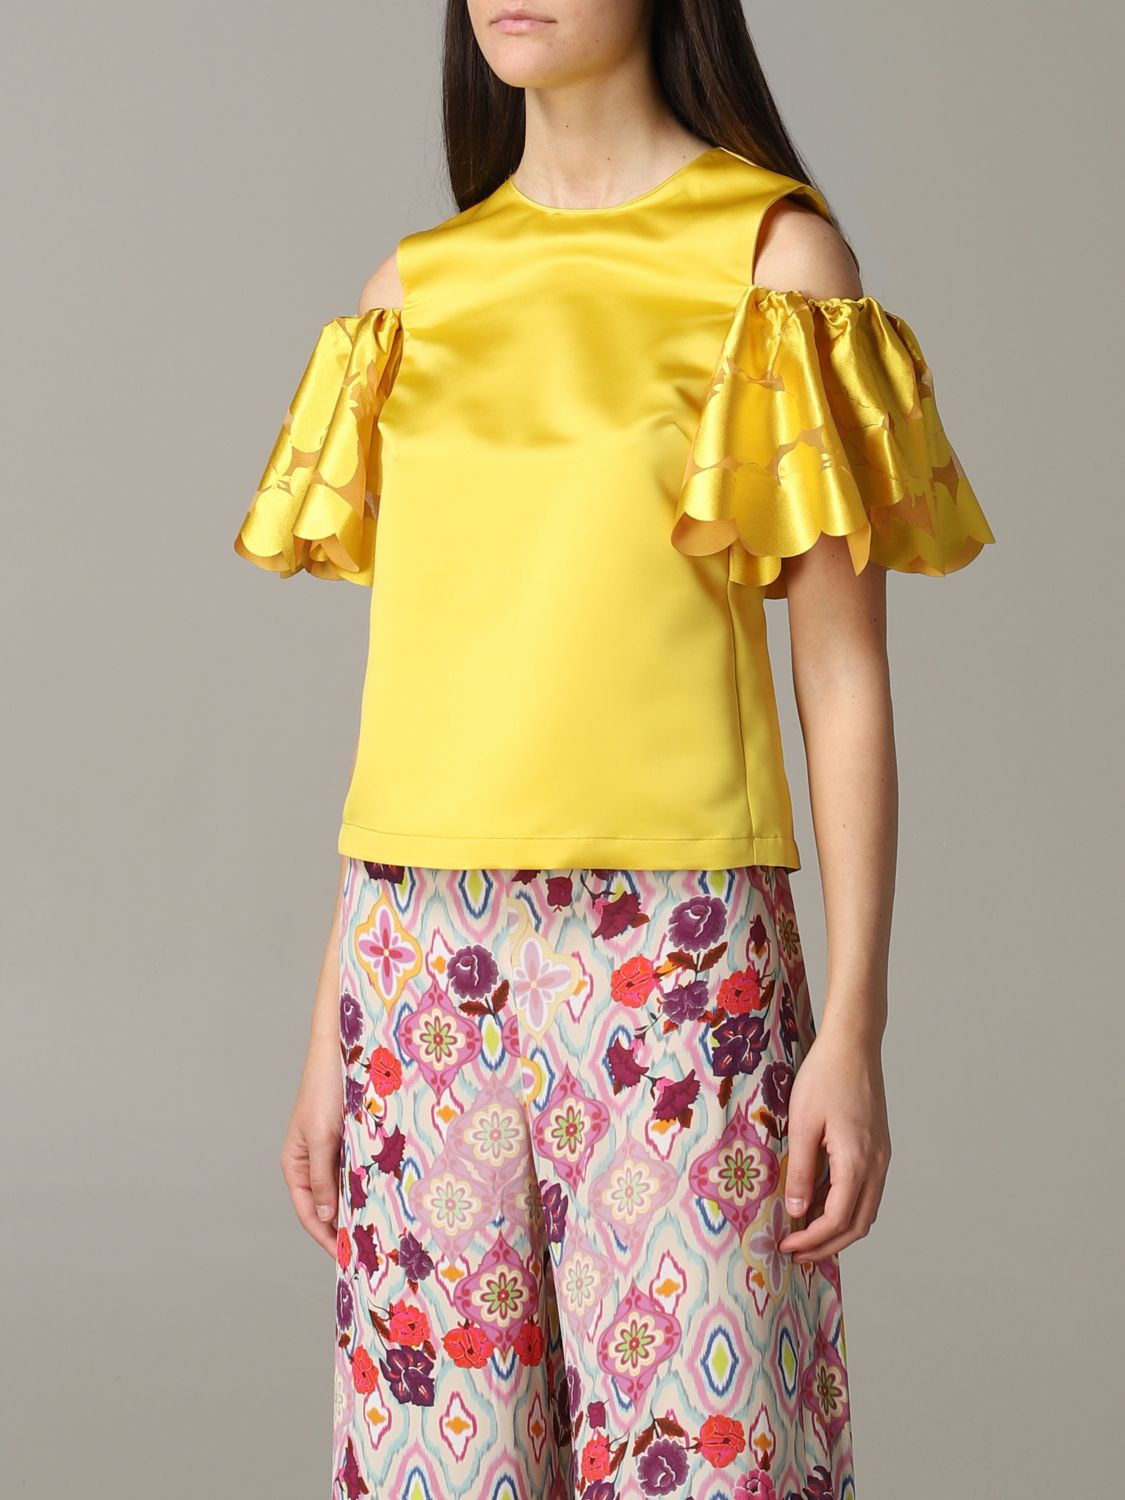 Pinko top with floral sleeves yellow 4